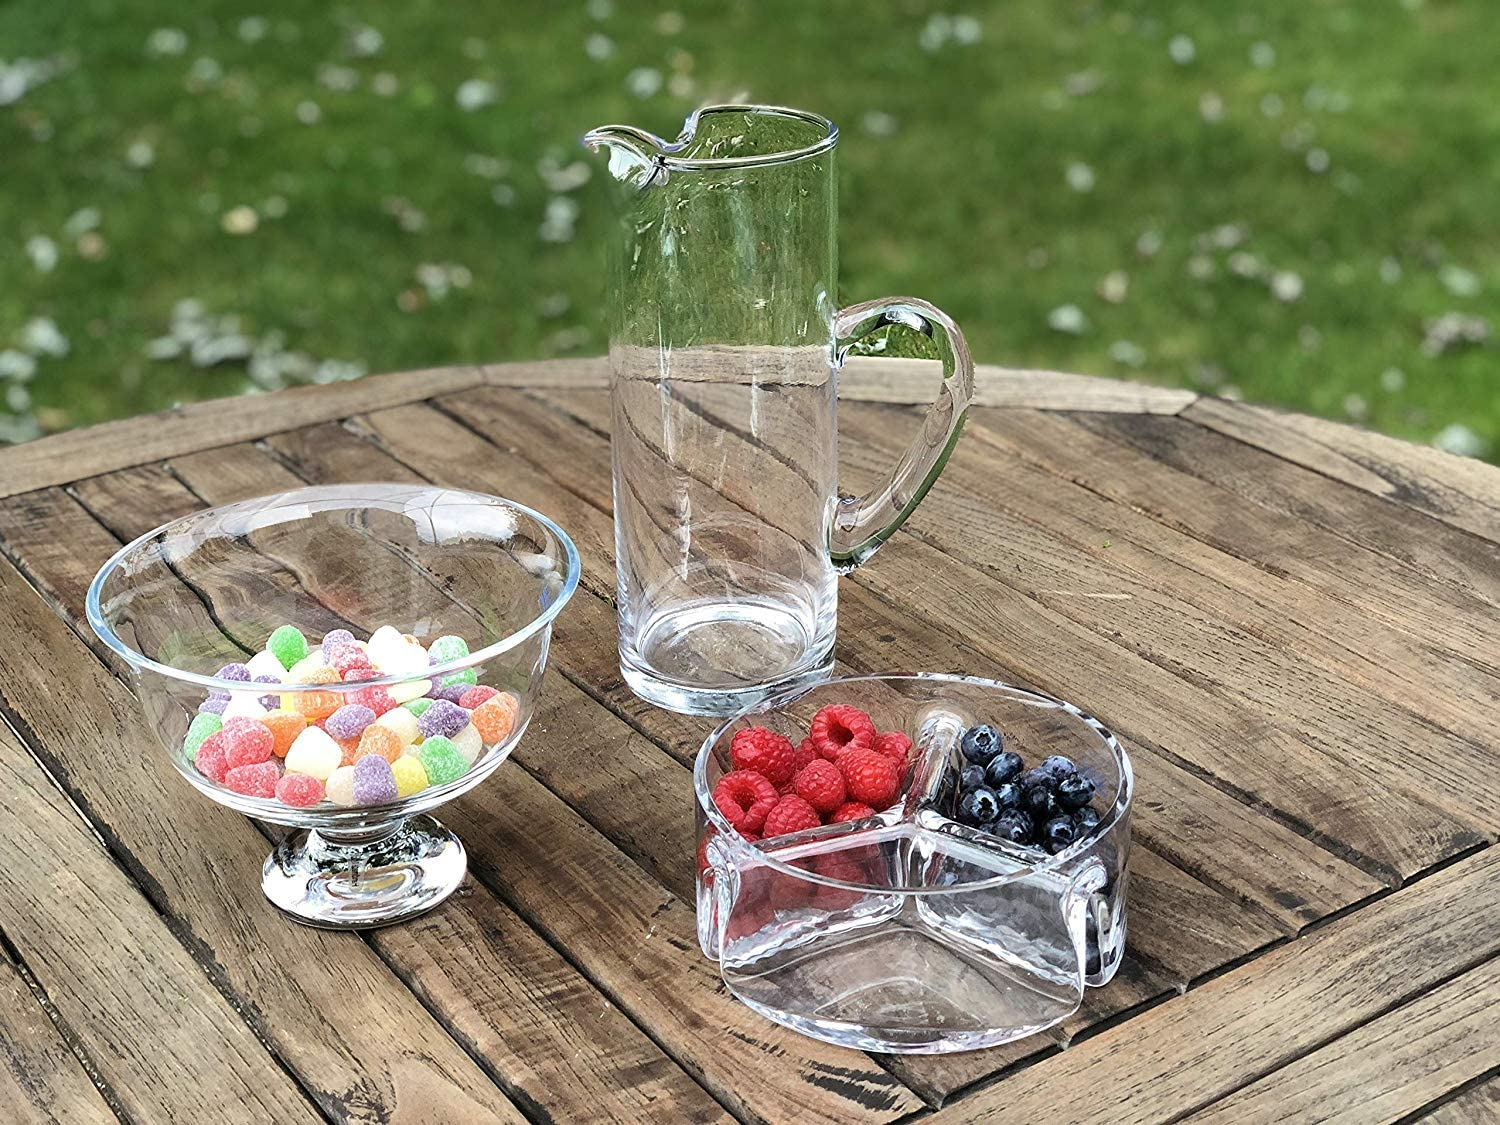 Amazon Com Badash Trista Crystal Serving Dish 3 Section Round Glass Server For Fruit Candy Dips Snacks Fine European Mouth Blown Lead Free Crystal Home Kitchen